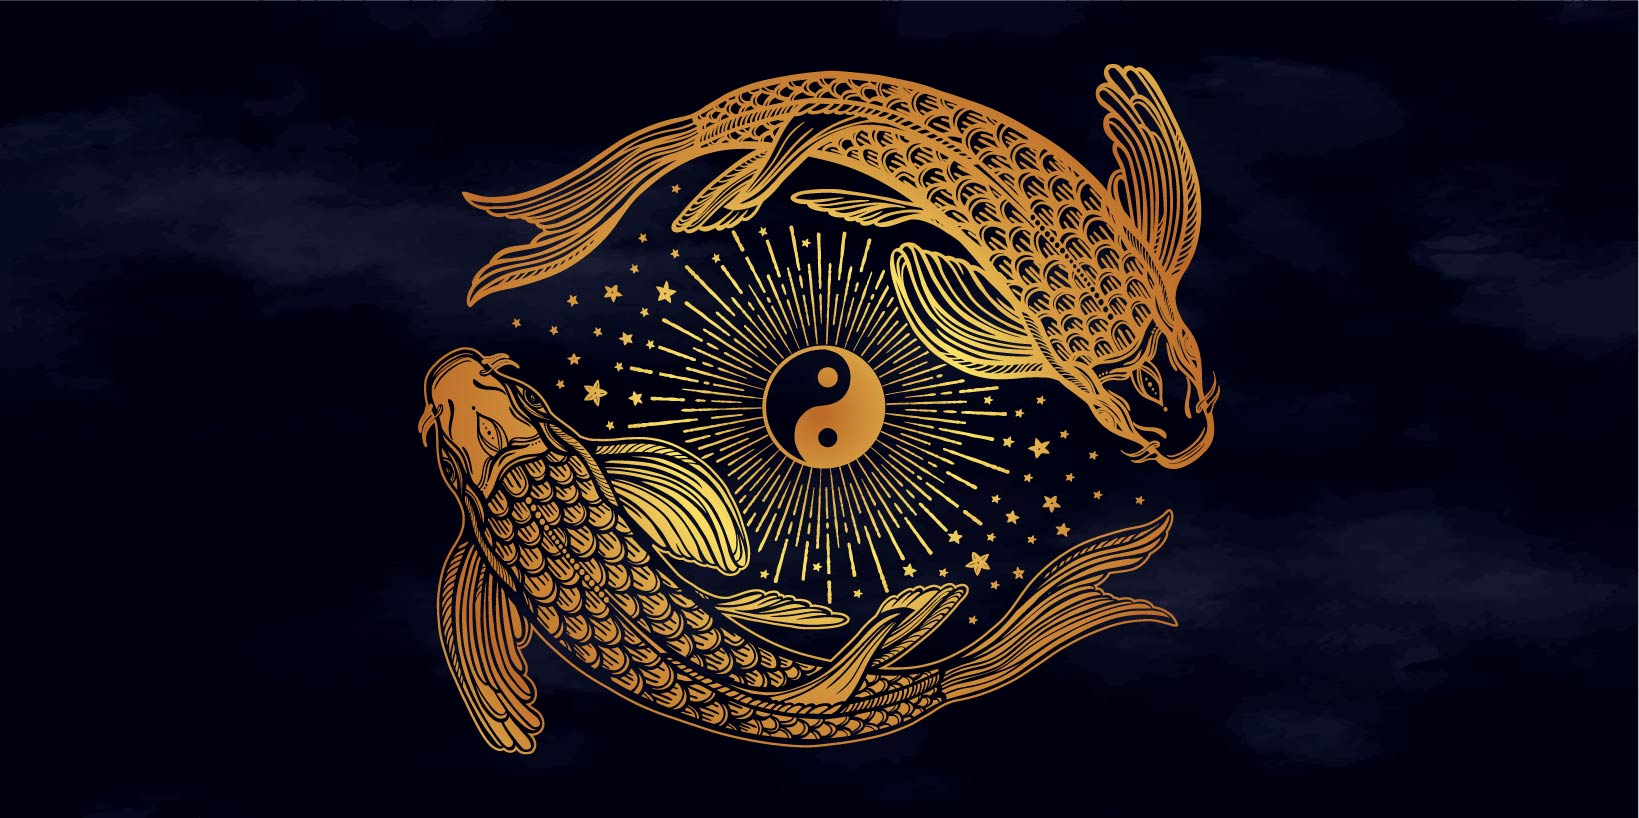 Ethnic fish Koi carp with symbol of harmony